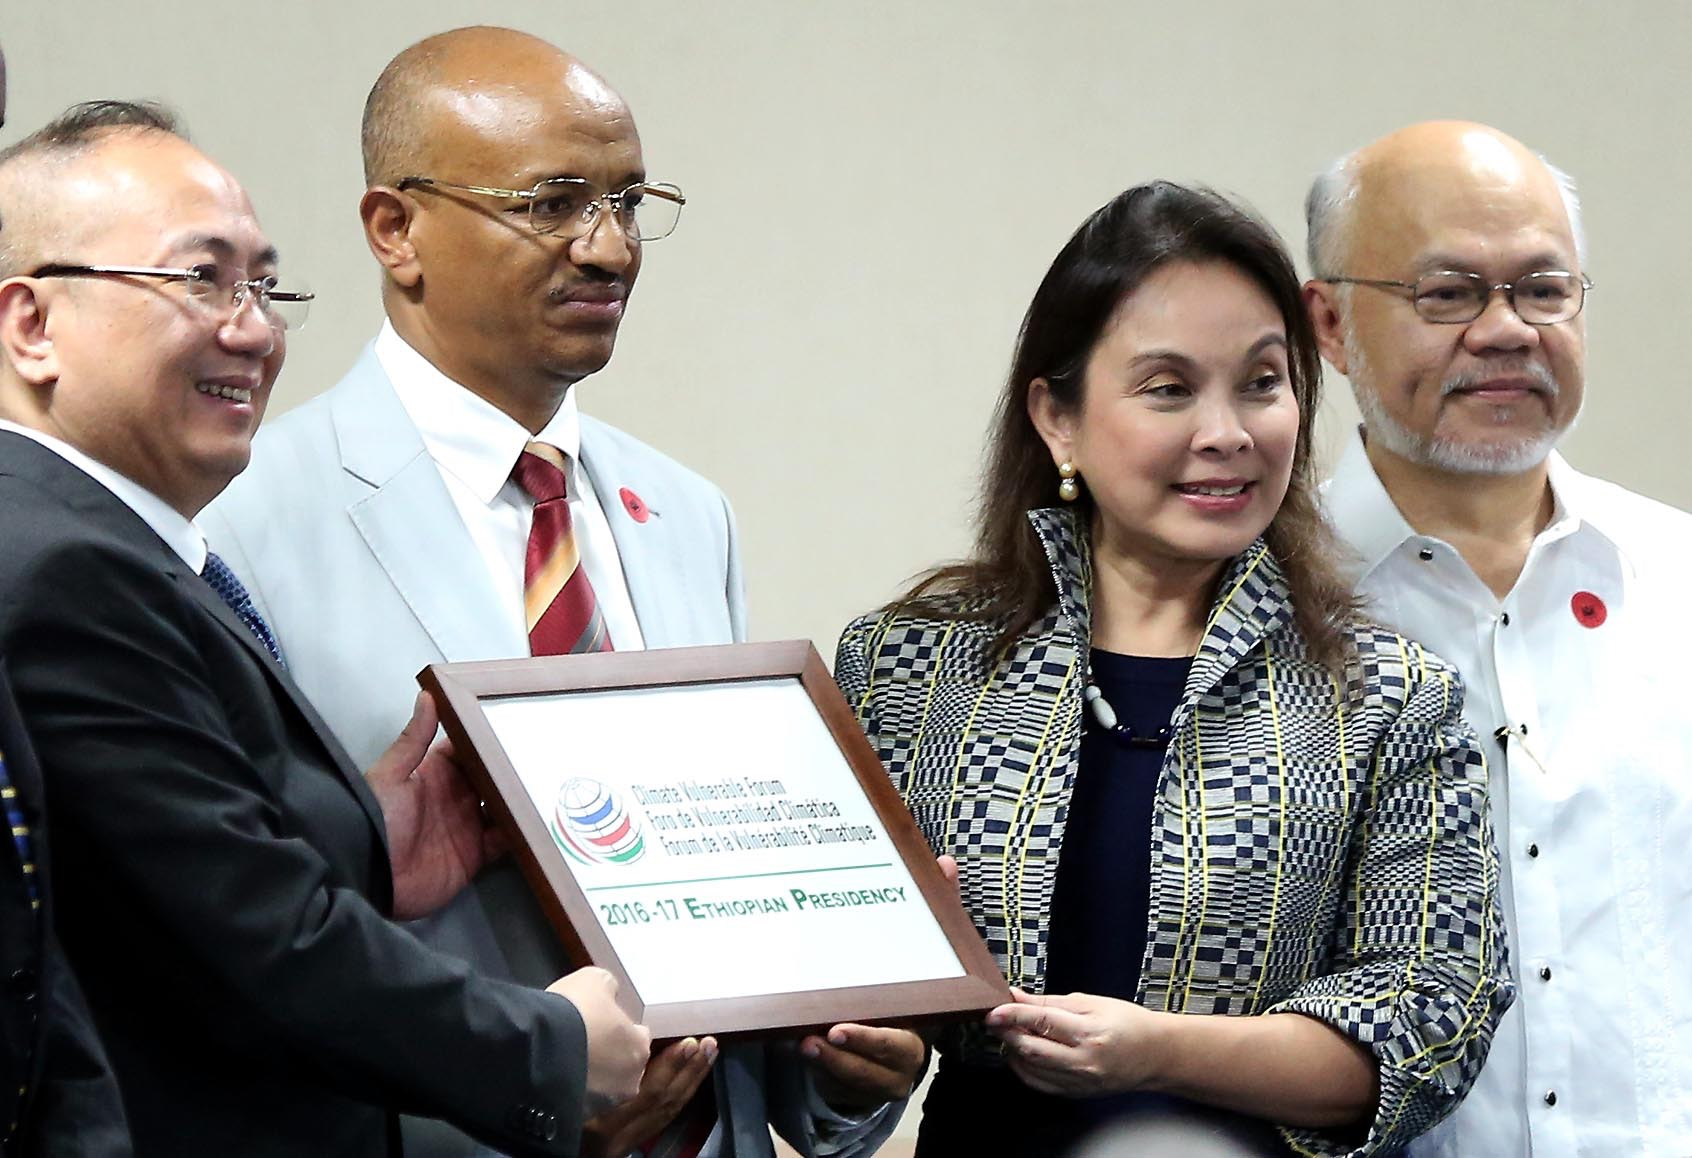 CVF TURNOVER. Senator Loren Legarda, chair of the Senate Committee on Climate Change at the Senate on Monday leads the turnover of the chairmanship of the Climate Vulnerable Forum (CVF) from the Philippines to Ethiopia. Photo by Alex Nuevaespaña/Senate PRIB.